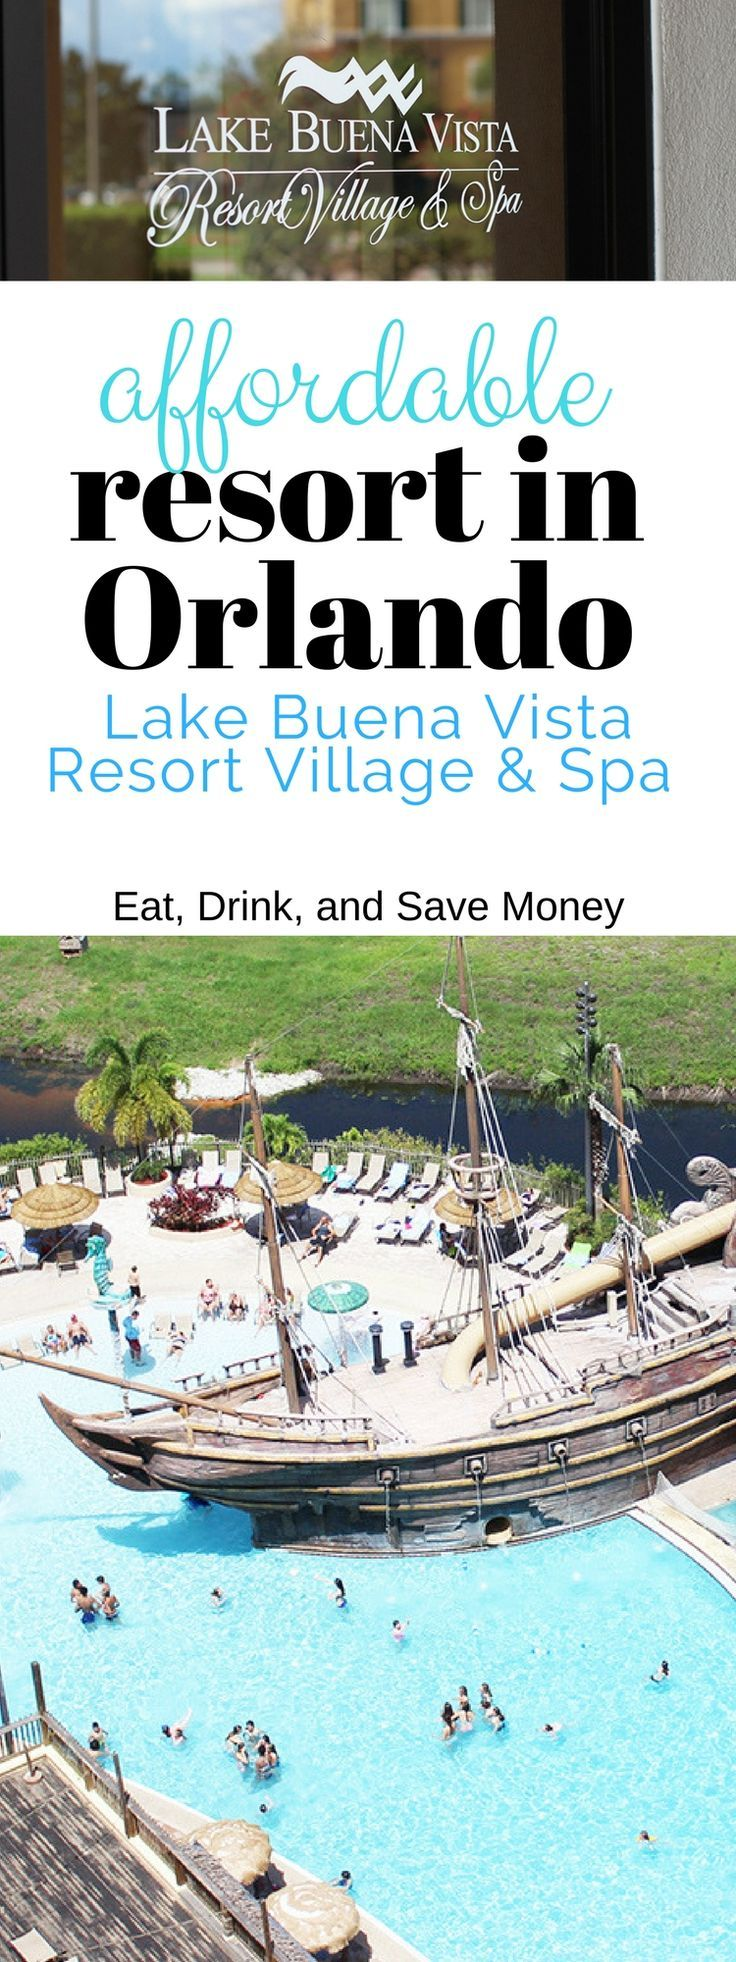 Affordable Resort in Orlando. Lake Buena Vista Resort Village and Spa Review. How to find an affordable hotel in Orlando.   Affordable Hotels in Orlando: Lake Buena Vista Resort Village and Spa http://eatdrinkandsavemoney.com/2017/06/30/affordable-hotels-